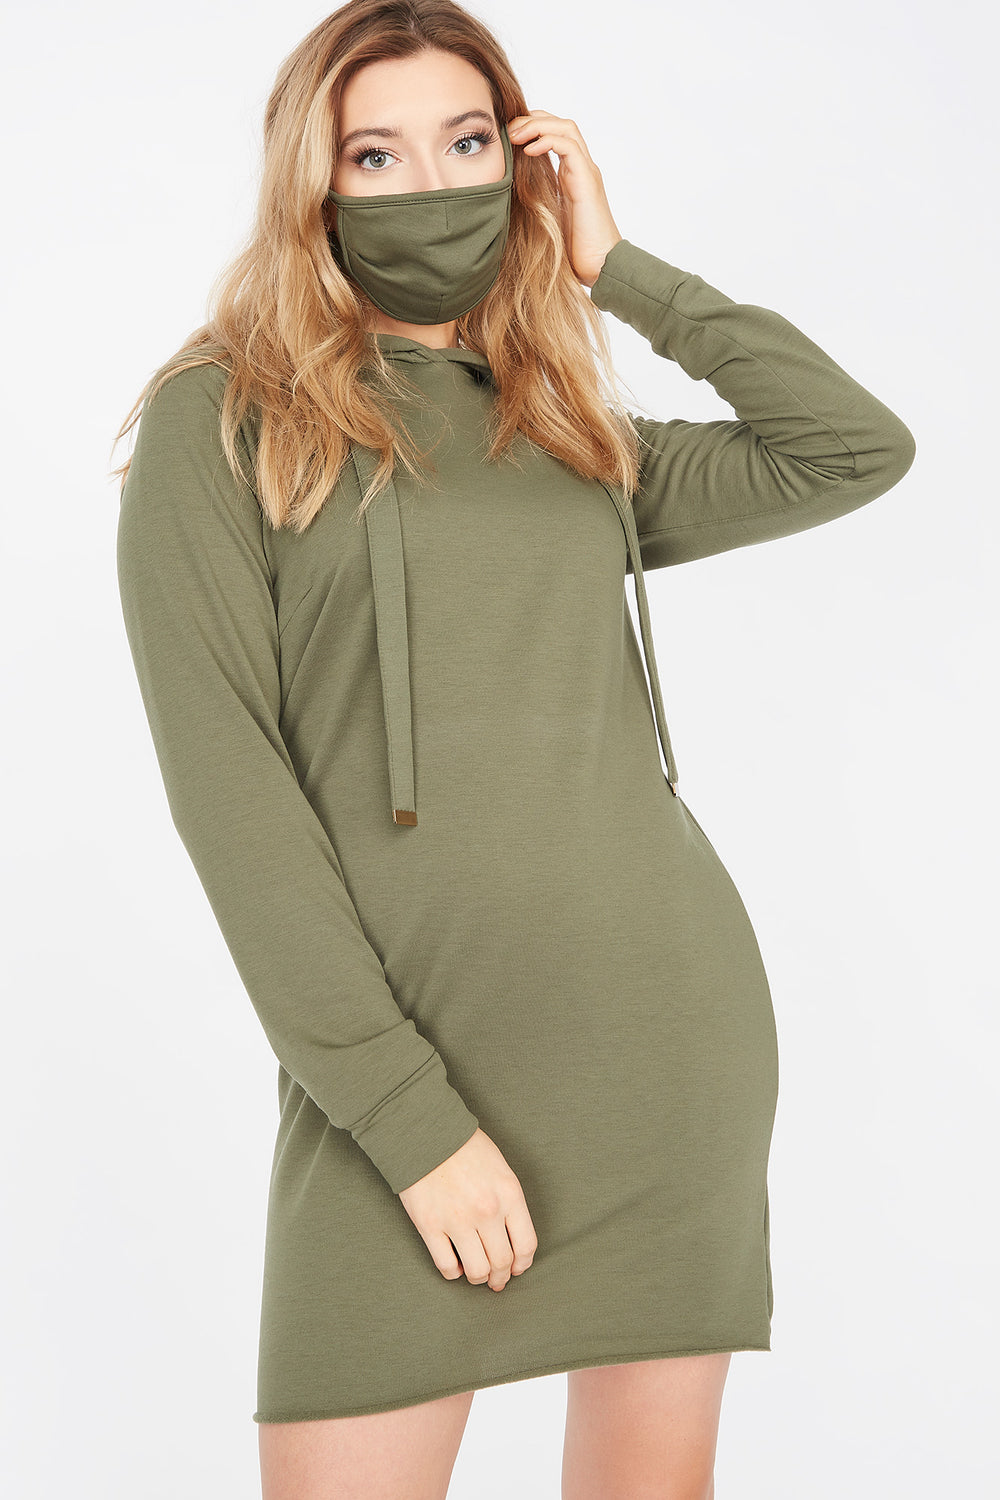 2-Piece Soft Fleece Hoodie Dress With Washable & Reusable Protective Face Mask Set Dark Green